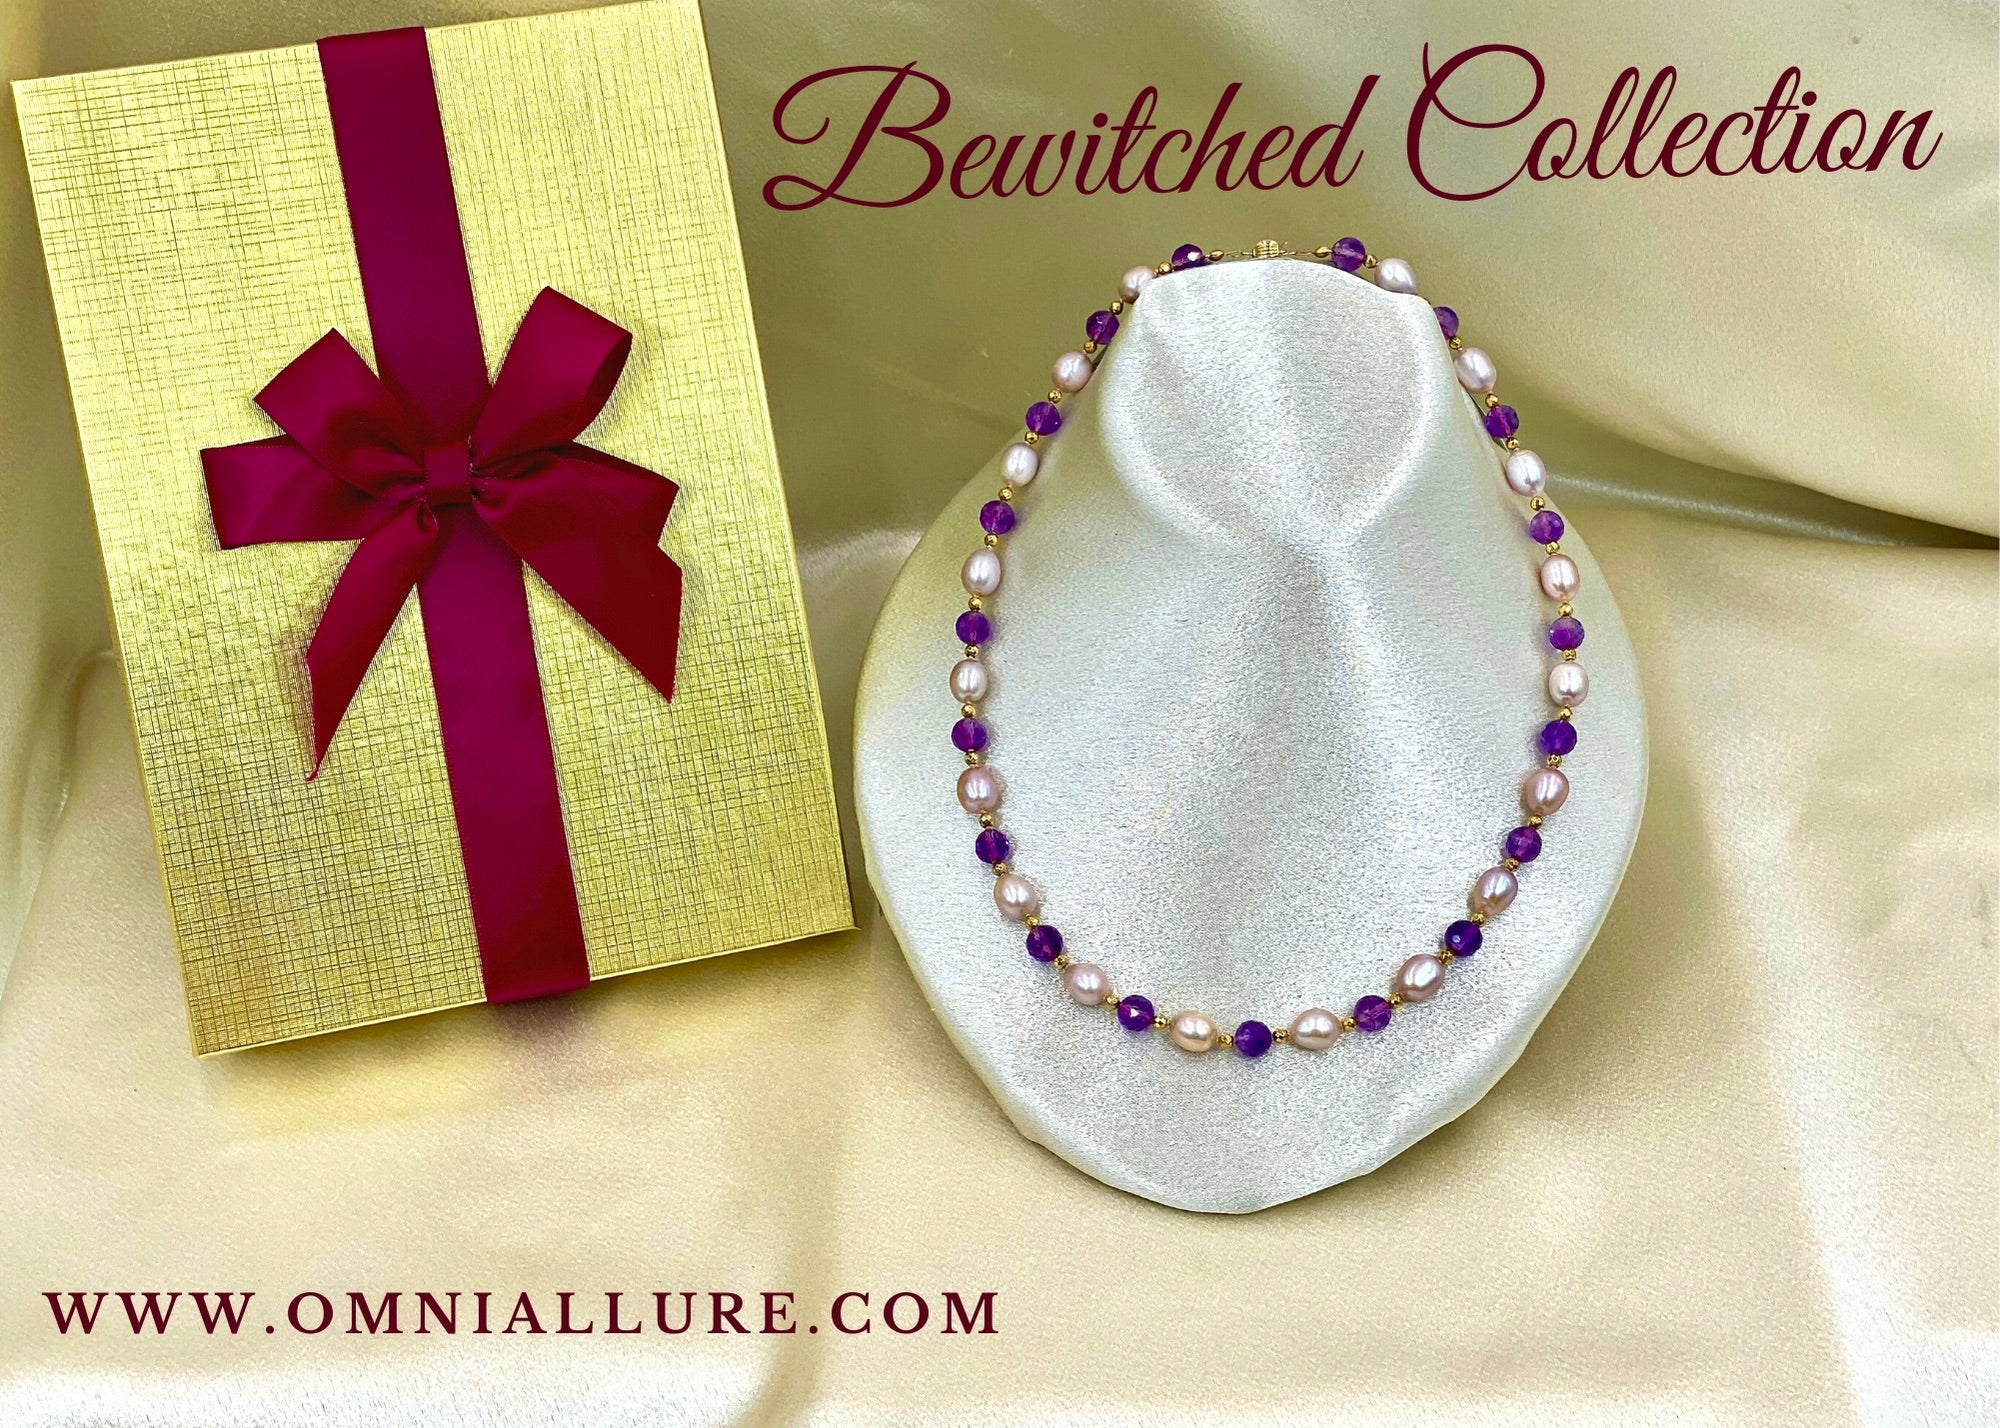 Handmade Freshwater Pearl Necklace - Omni Allure